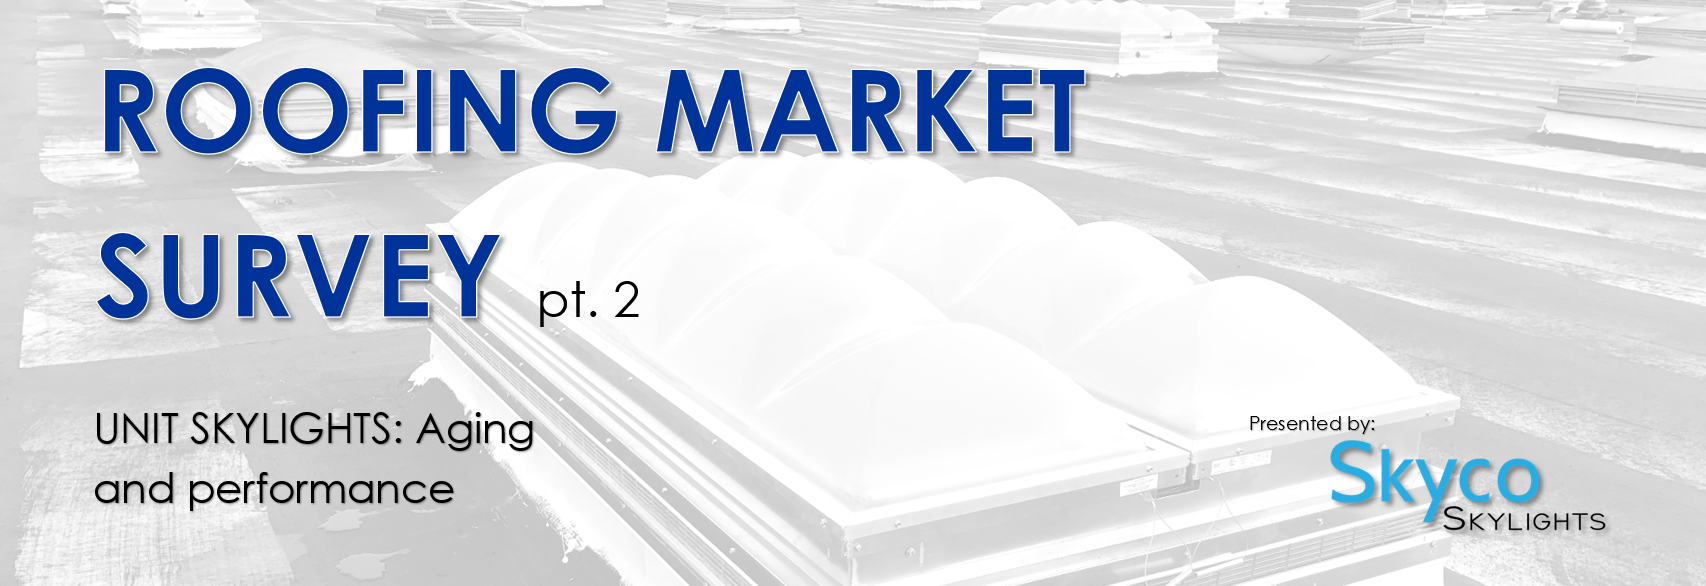 Roofing Market Survey